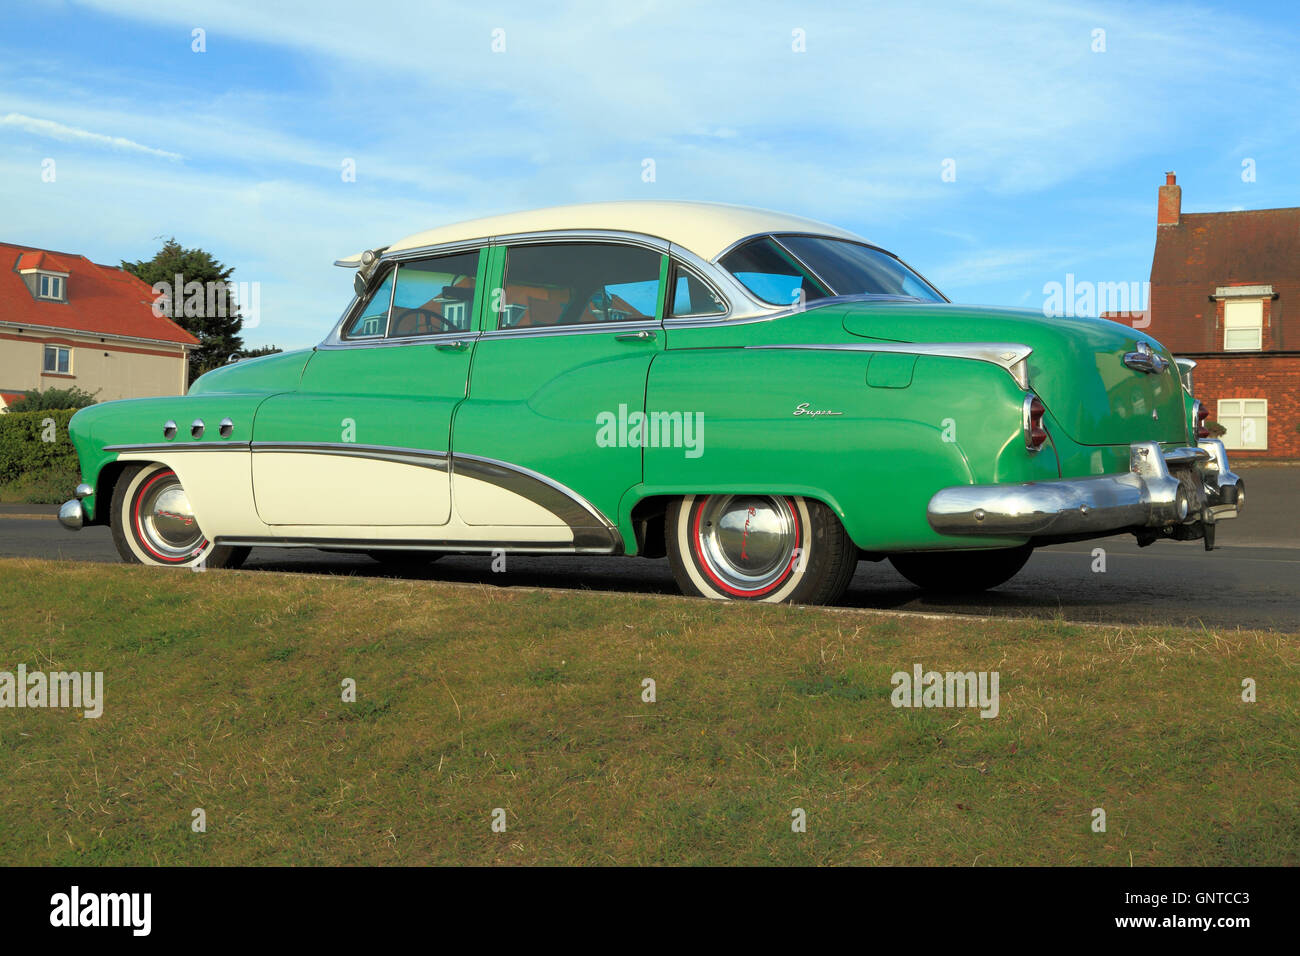 Buick Eight Super, iconic vintage U S A, American automobile, motorcar car saloon 1950s historic cars motorcars - Stock Image